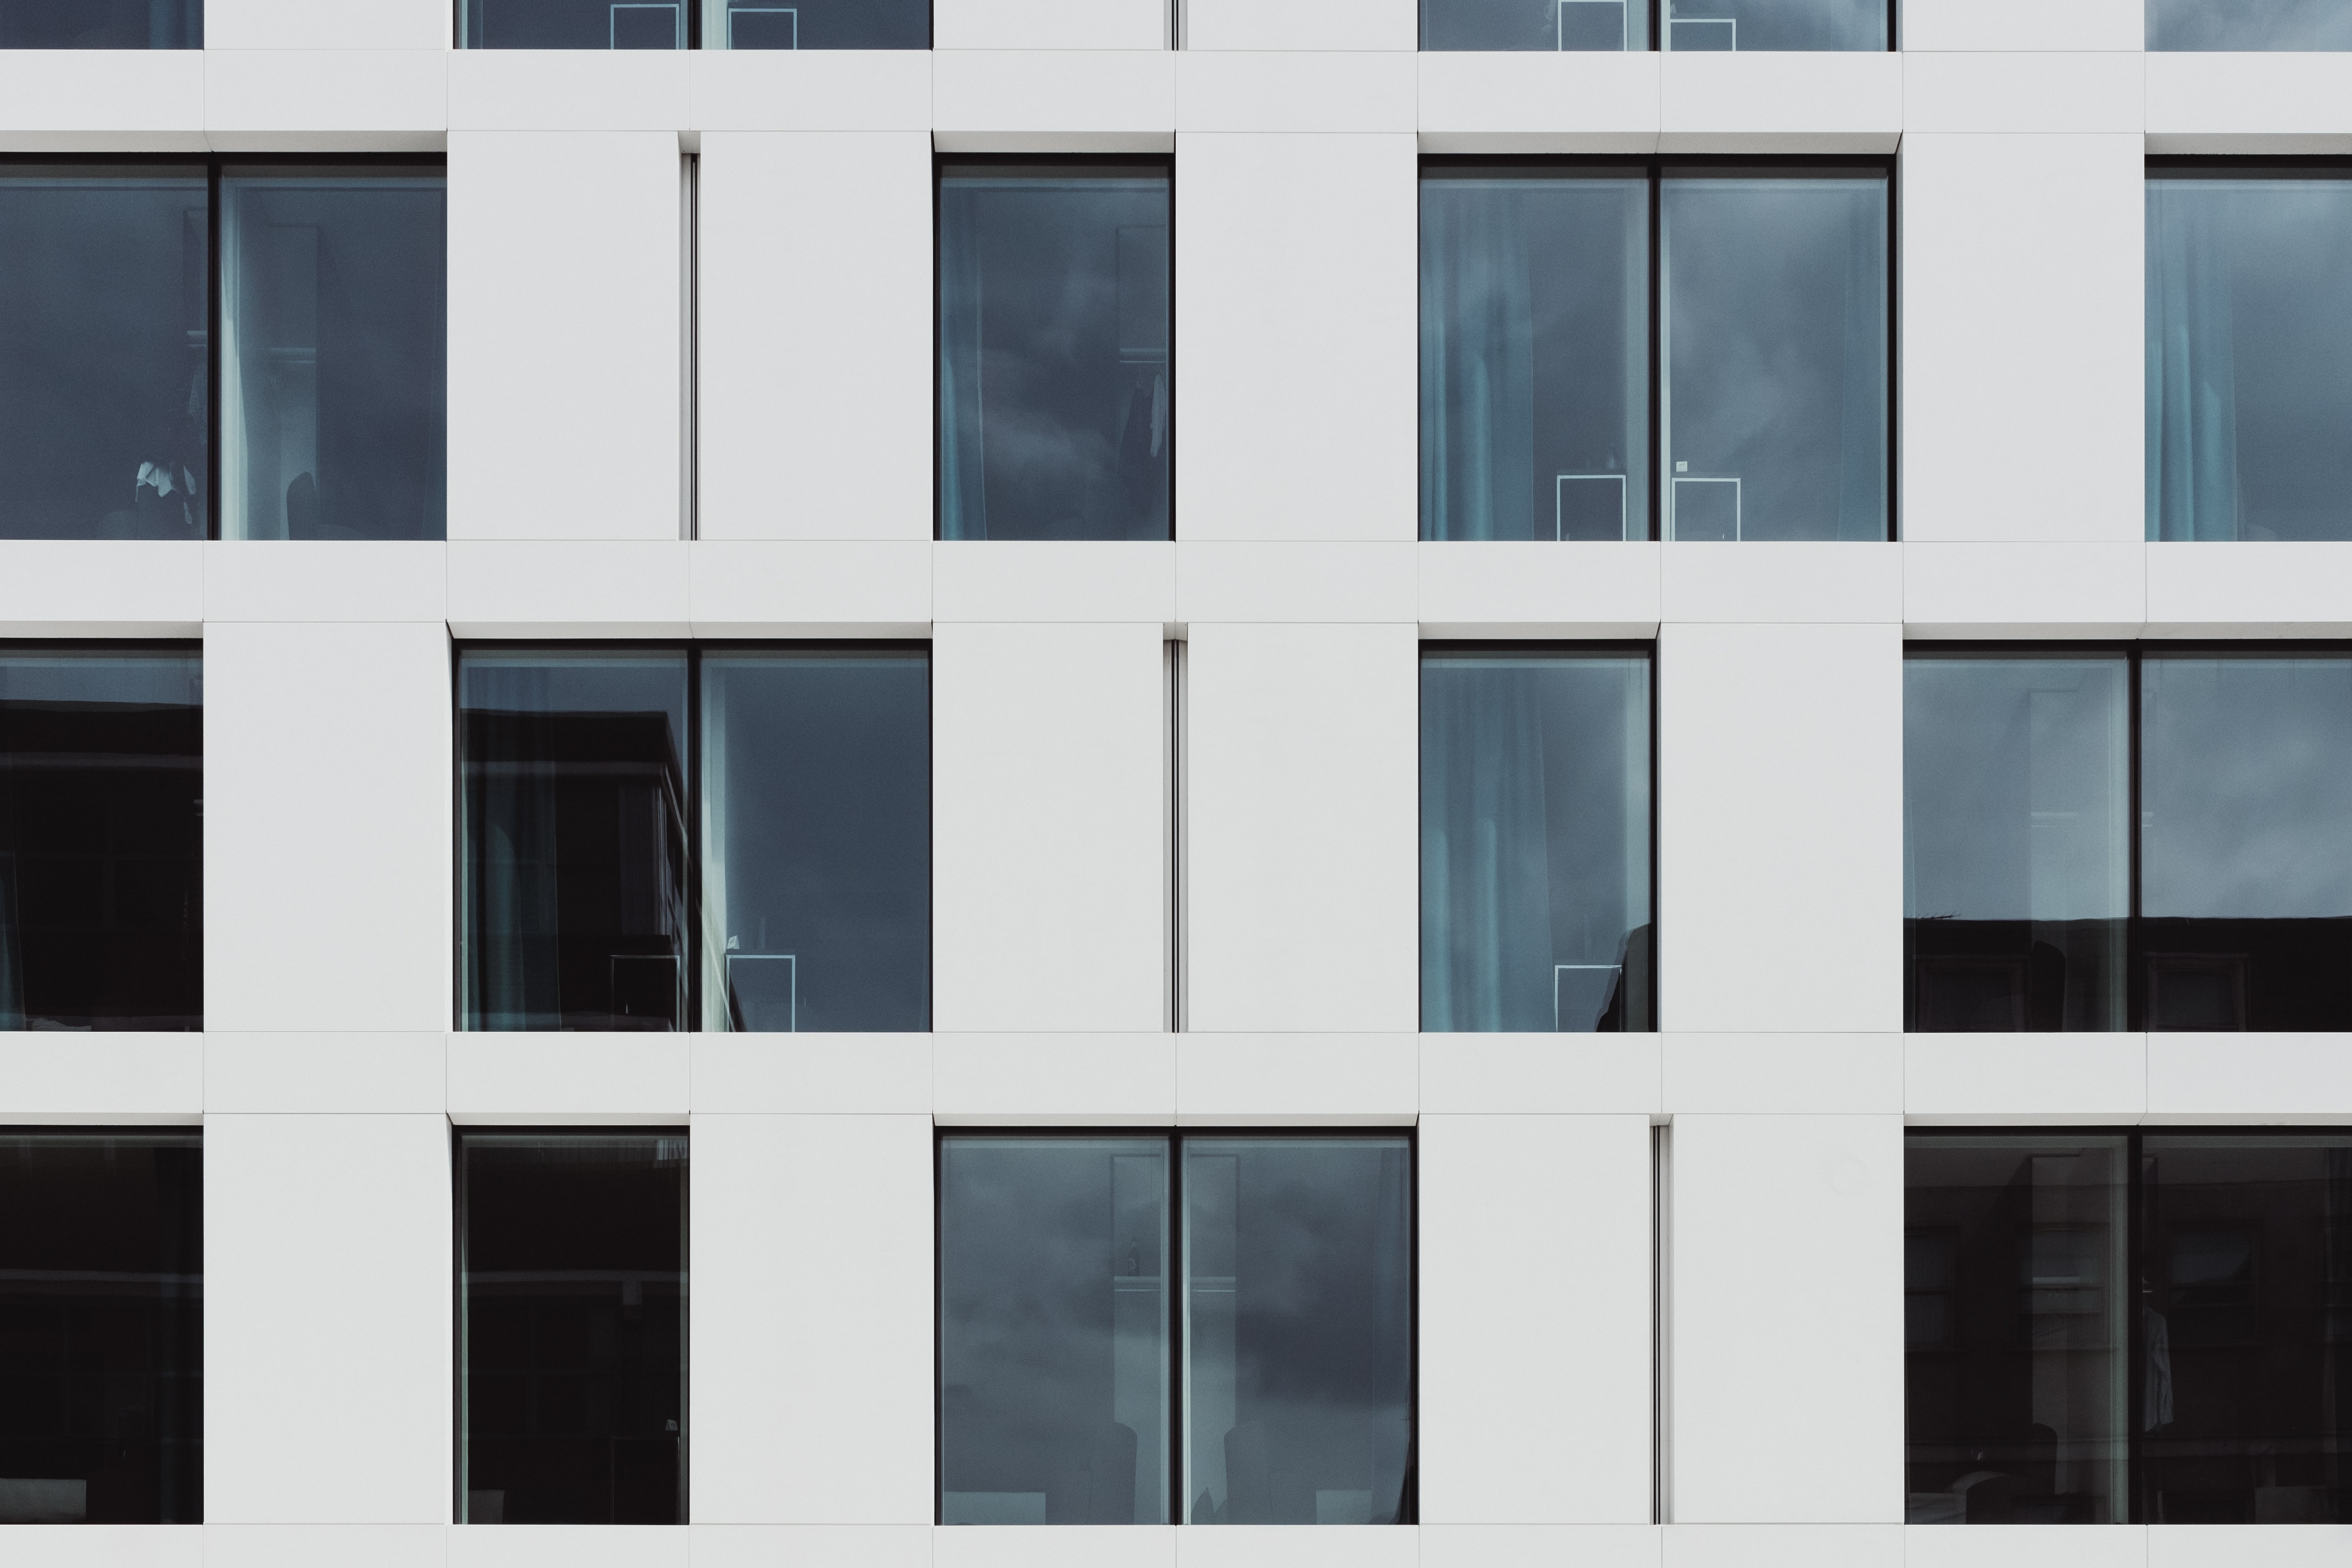 Modern design windows on white walls of a building in London.